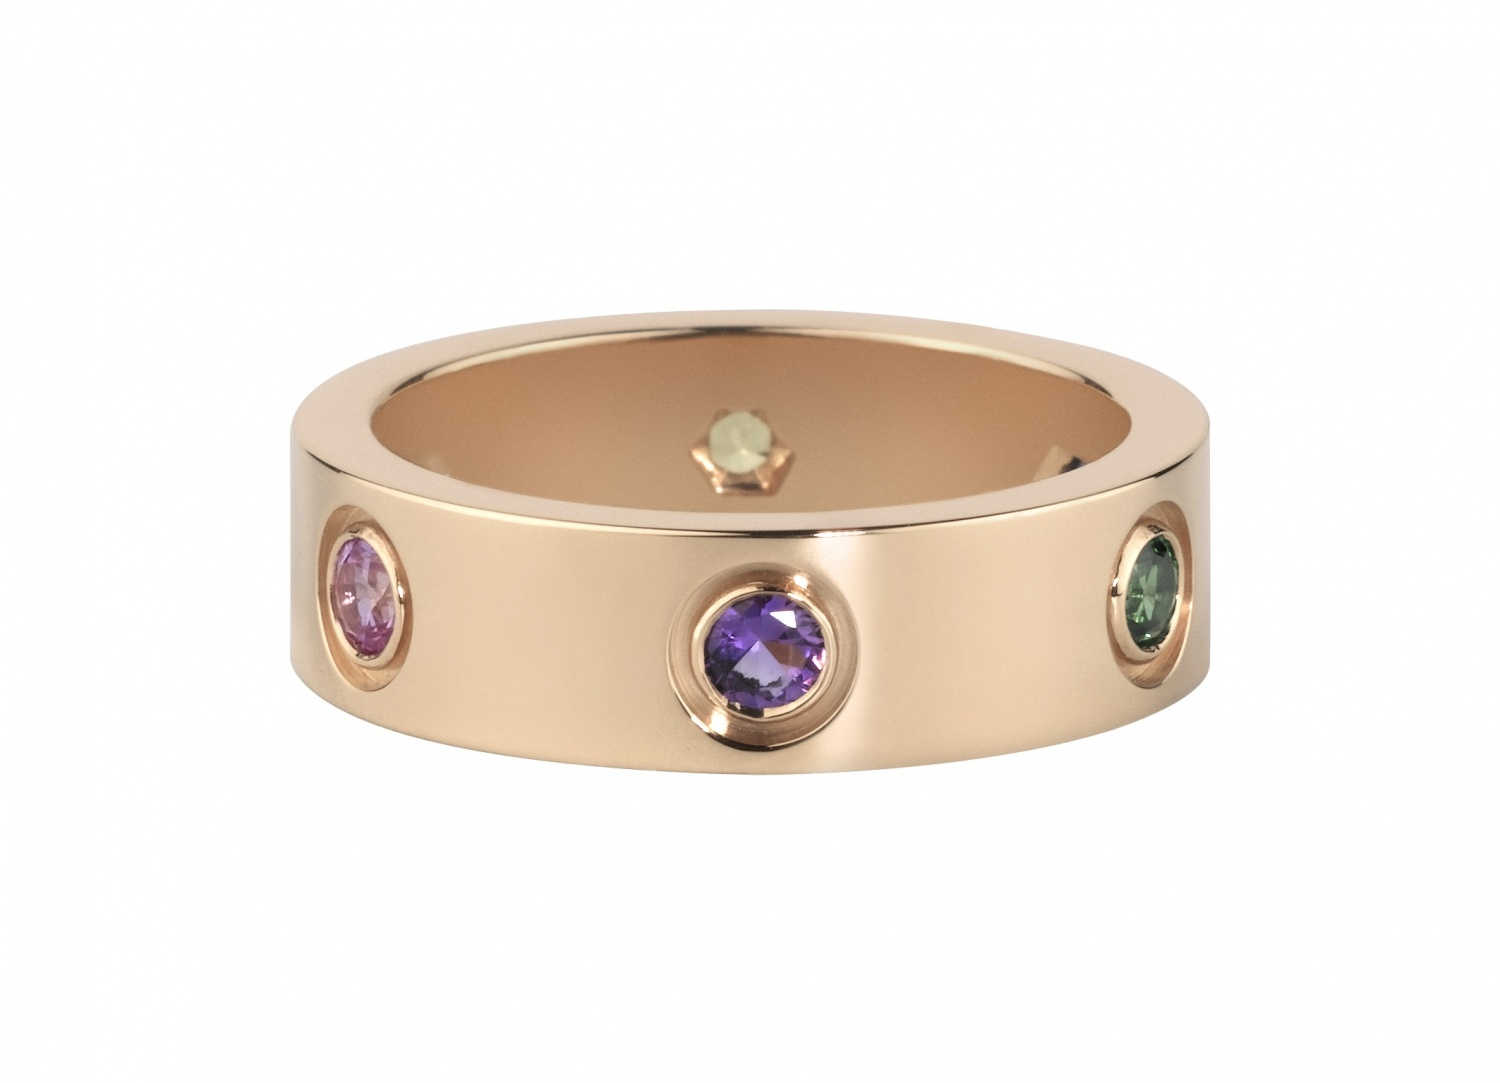 Cartier-Ring-from-the-Love-collection-Pink-gold-set-with-pink-yellow-and-blue-sapphires-green-and-orange-garnets-and-an-amethyst